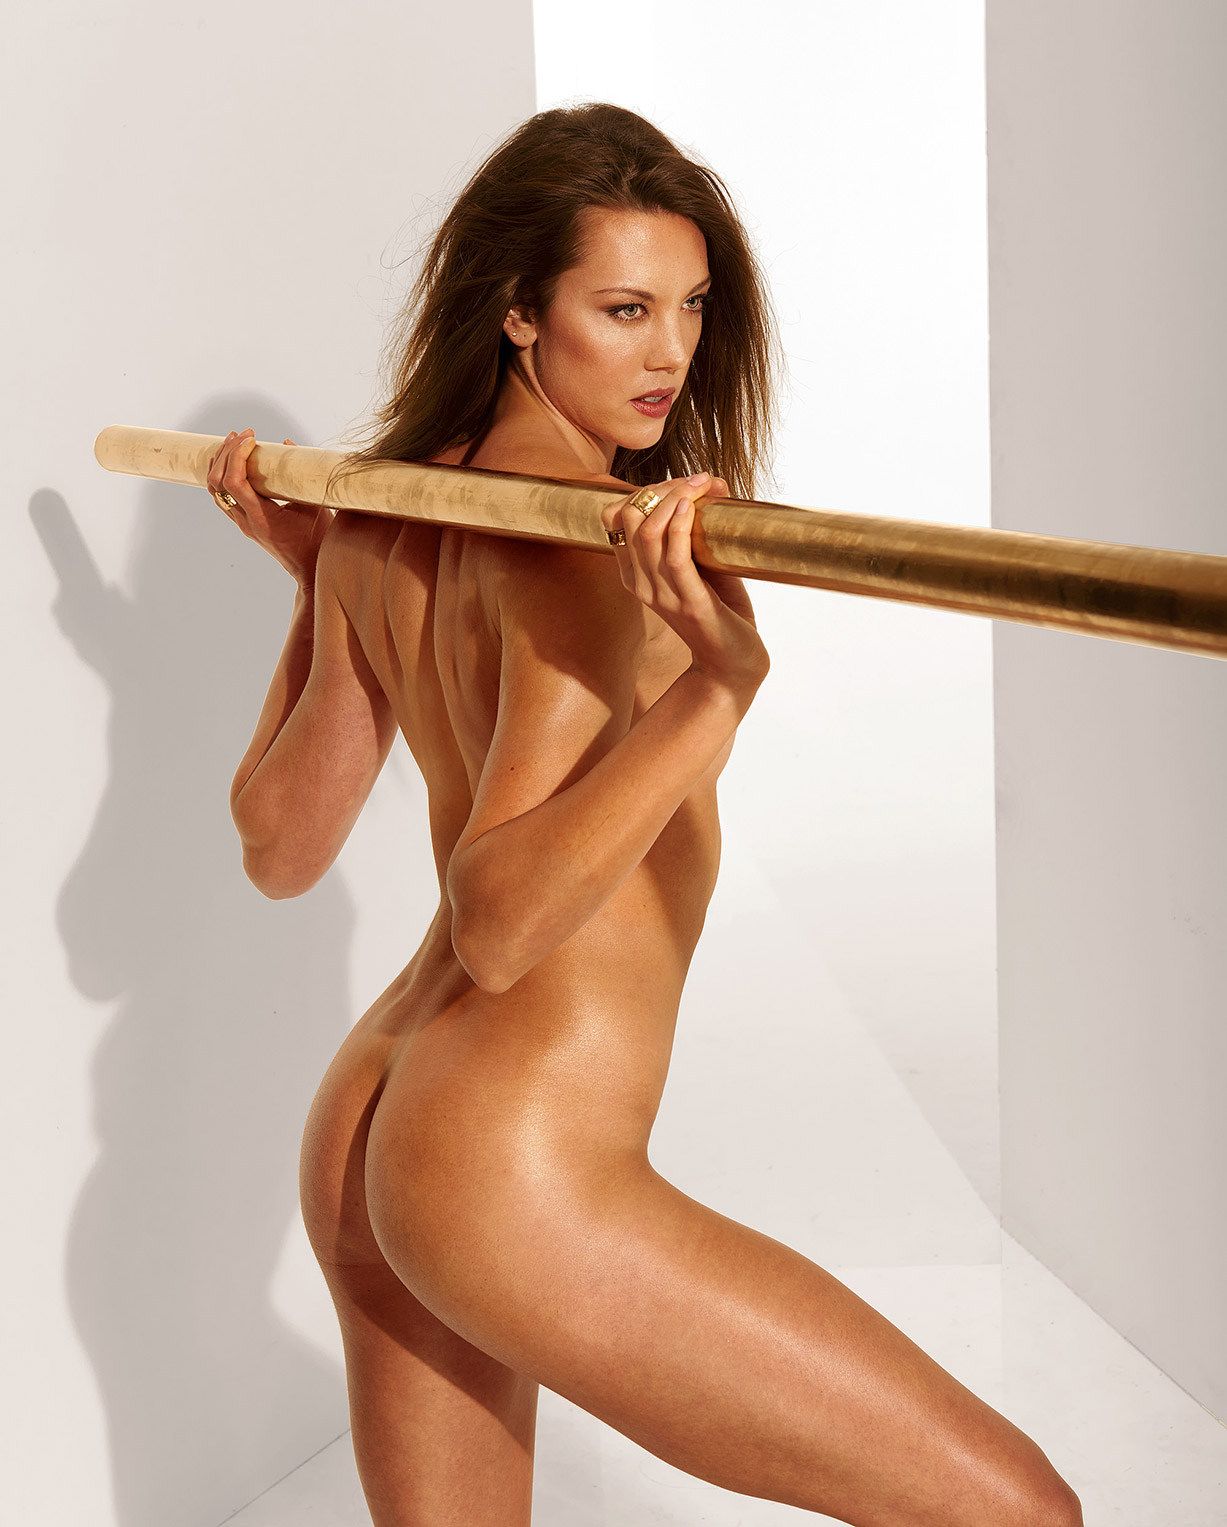 mr-skin-nude-olympic-athletes-monica-photo-oral